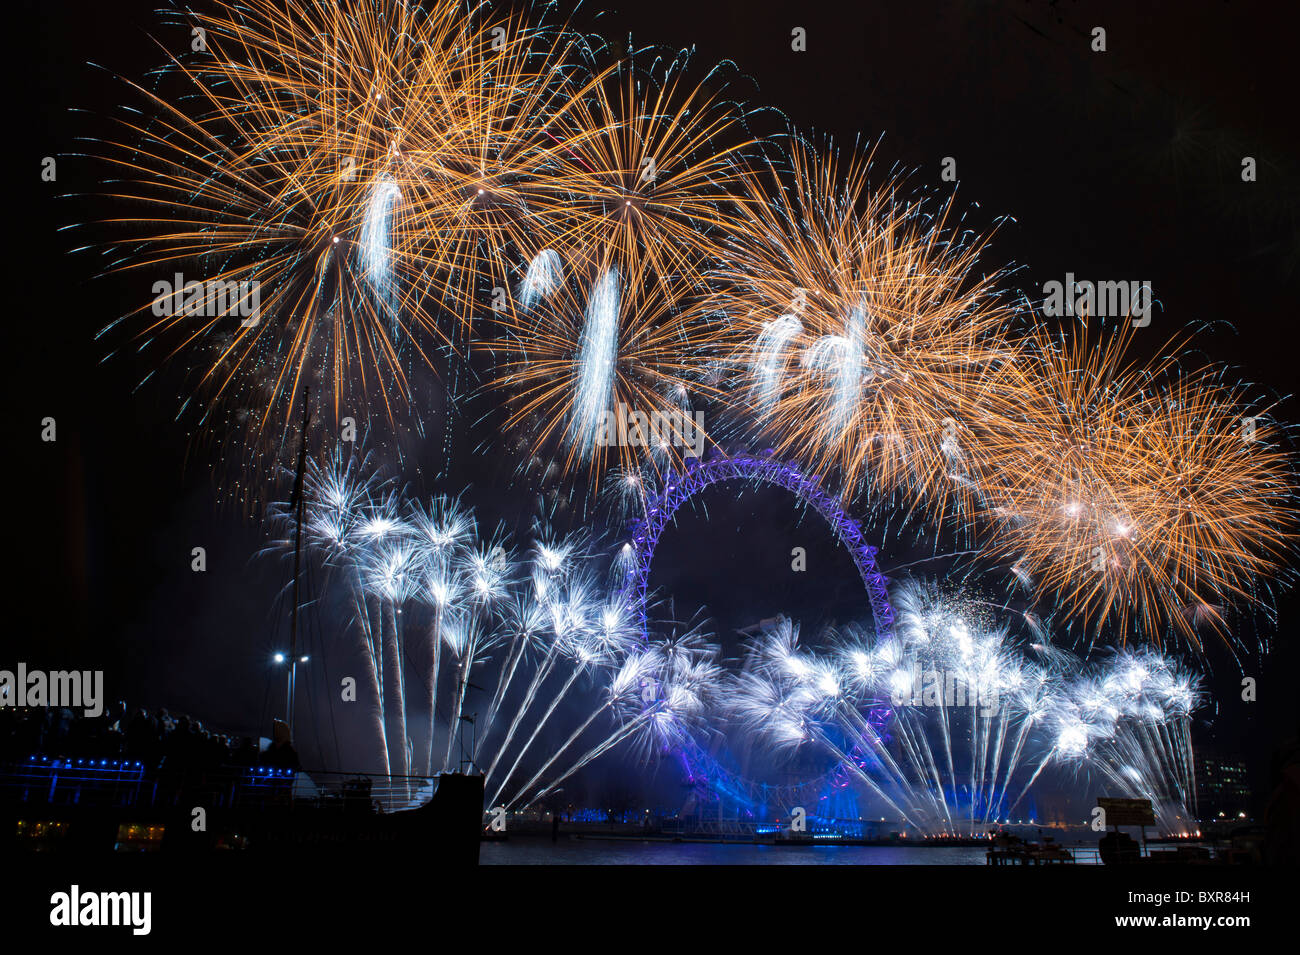 The London Eye lit up by fireworks on New Years eve 31st December 2010. - Stock Image